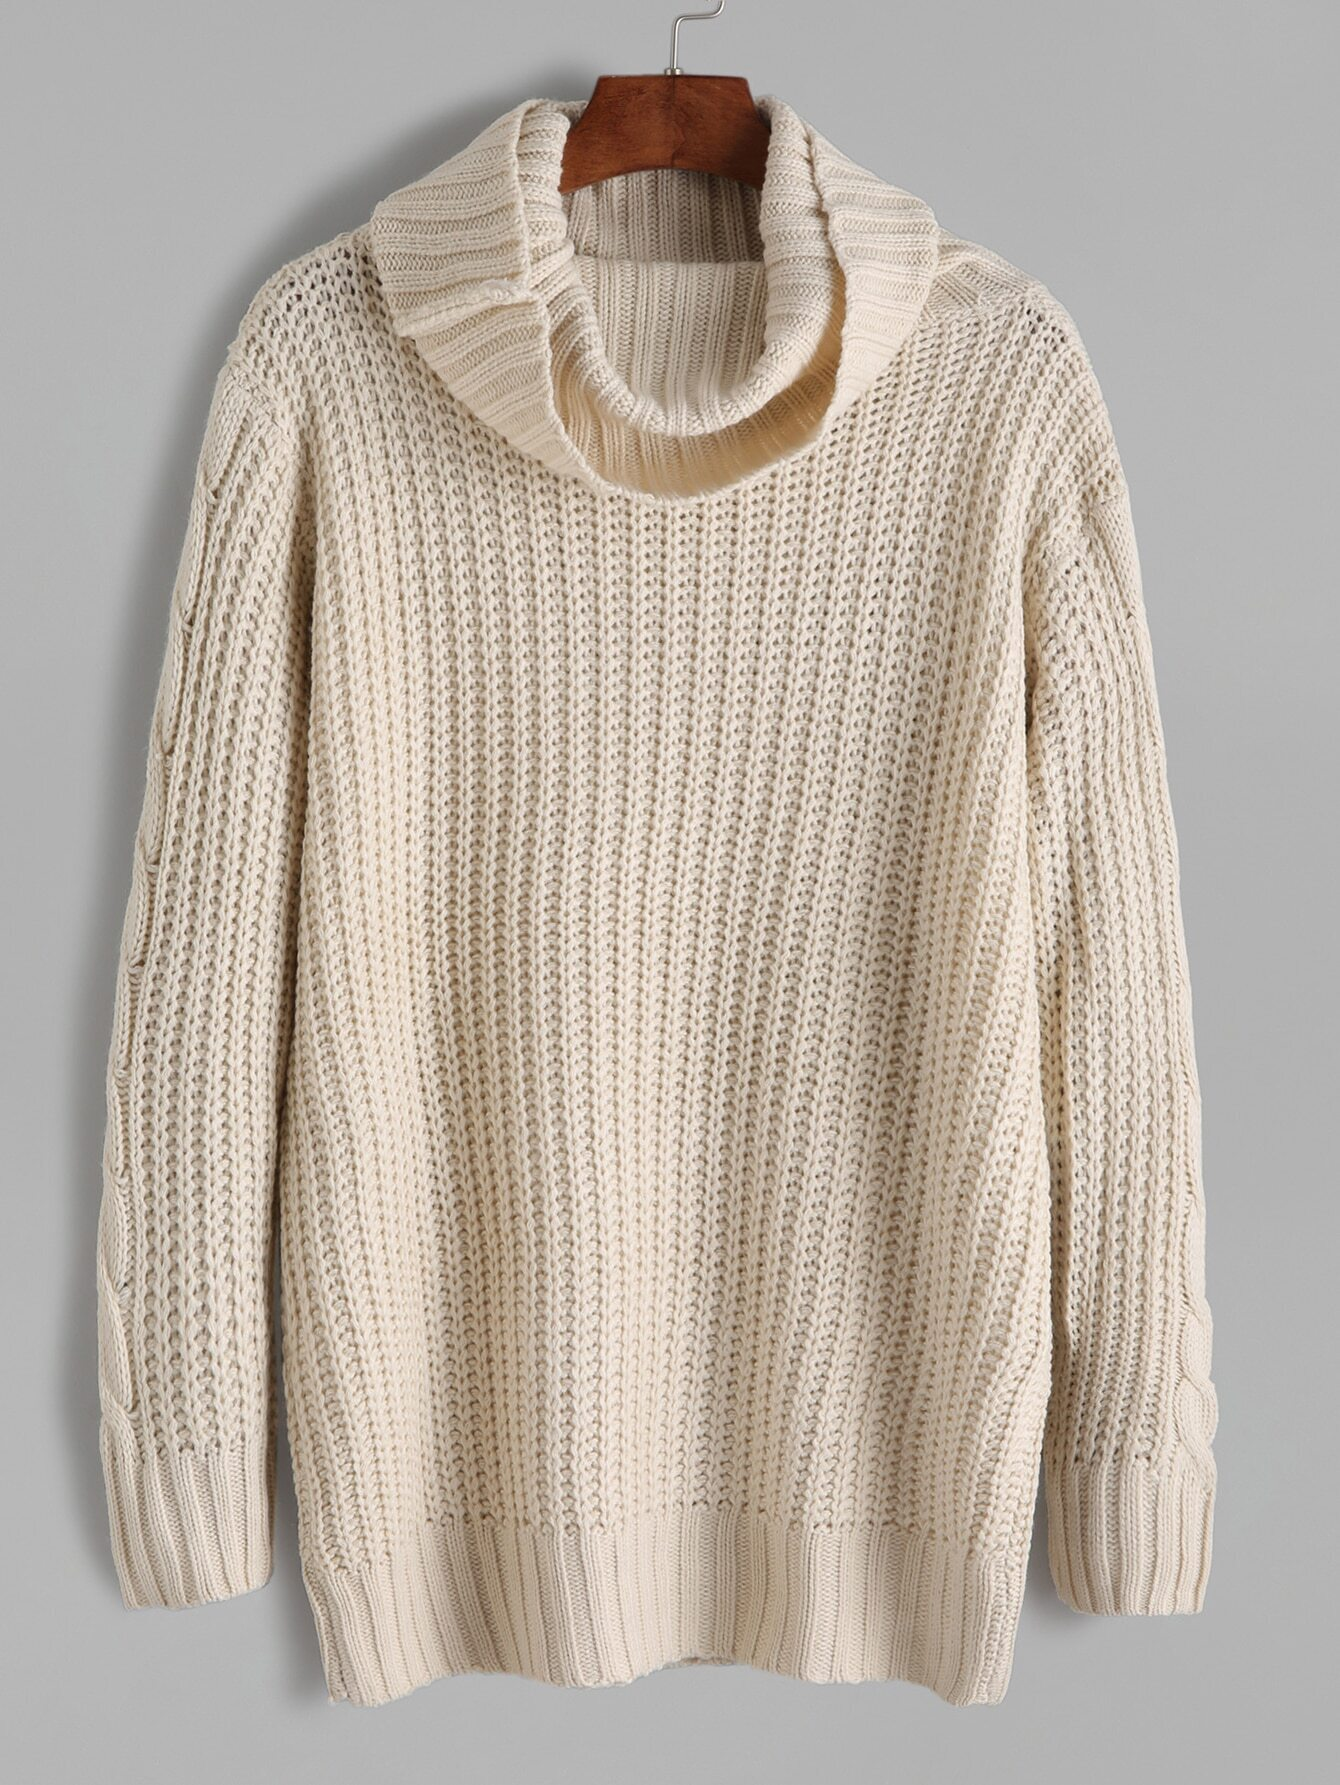 Apricot Cable Knit Turtleneck Sweater EmmaCloth-Women Fast Fashion ...